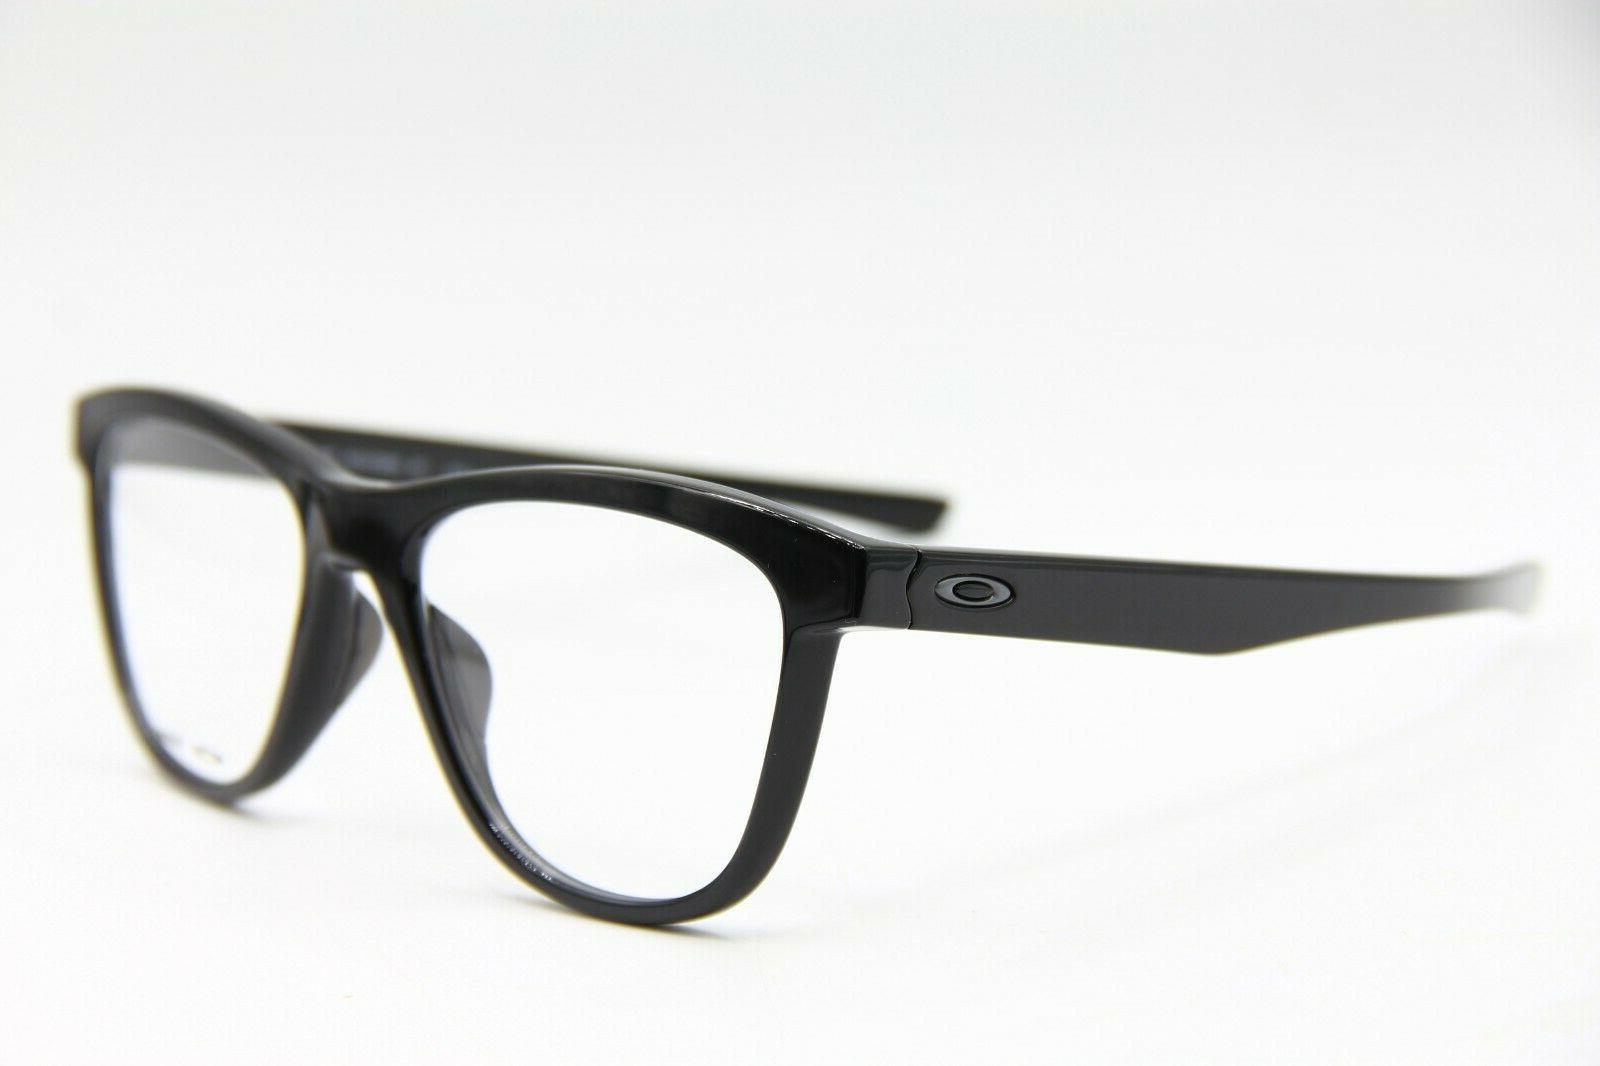 NEW GROUNDED AUTHENTIC EYEGLASSES RX W/CASE 53-17